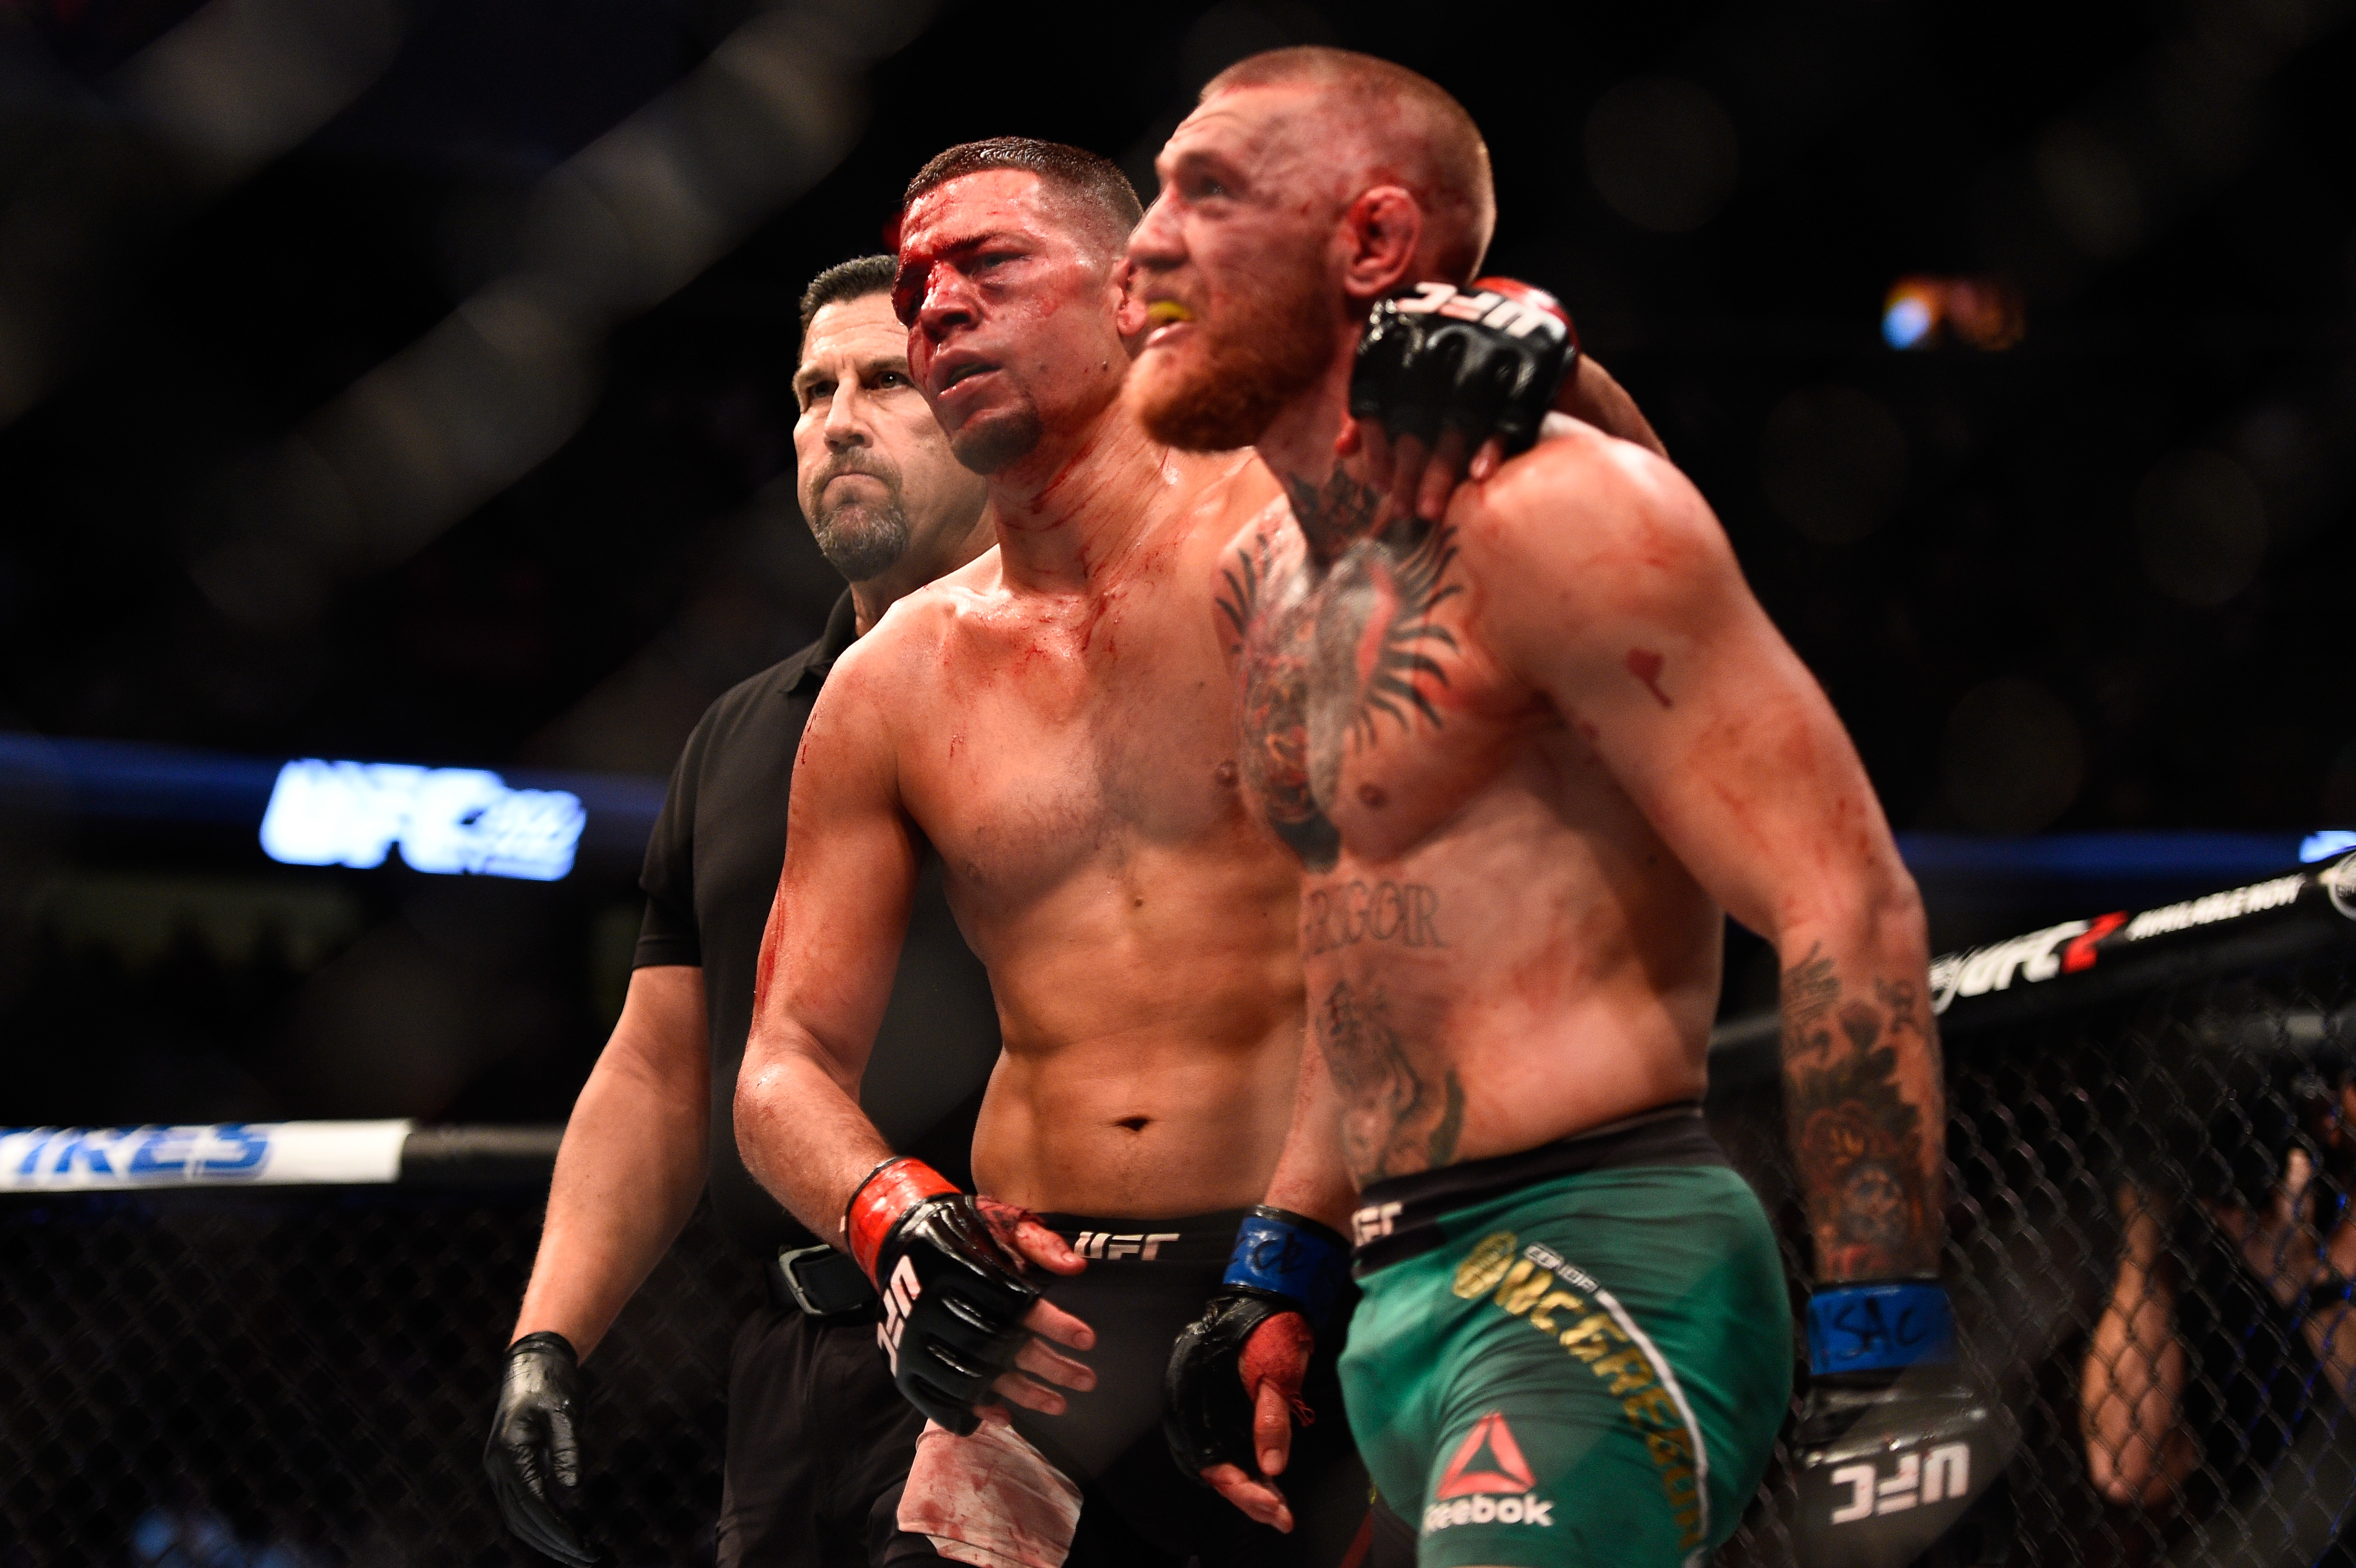 UFC champion Conor McGregor looking forward to trilogy fight with Nate Diaz